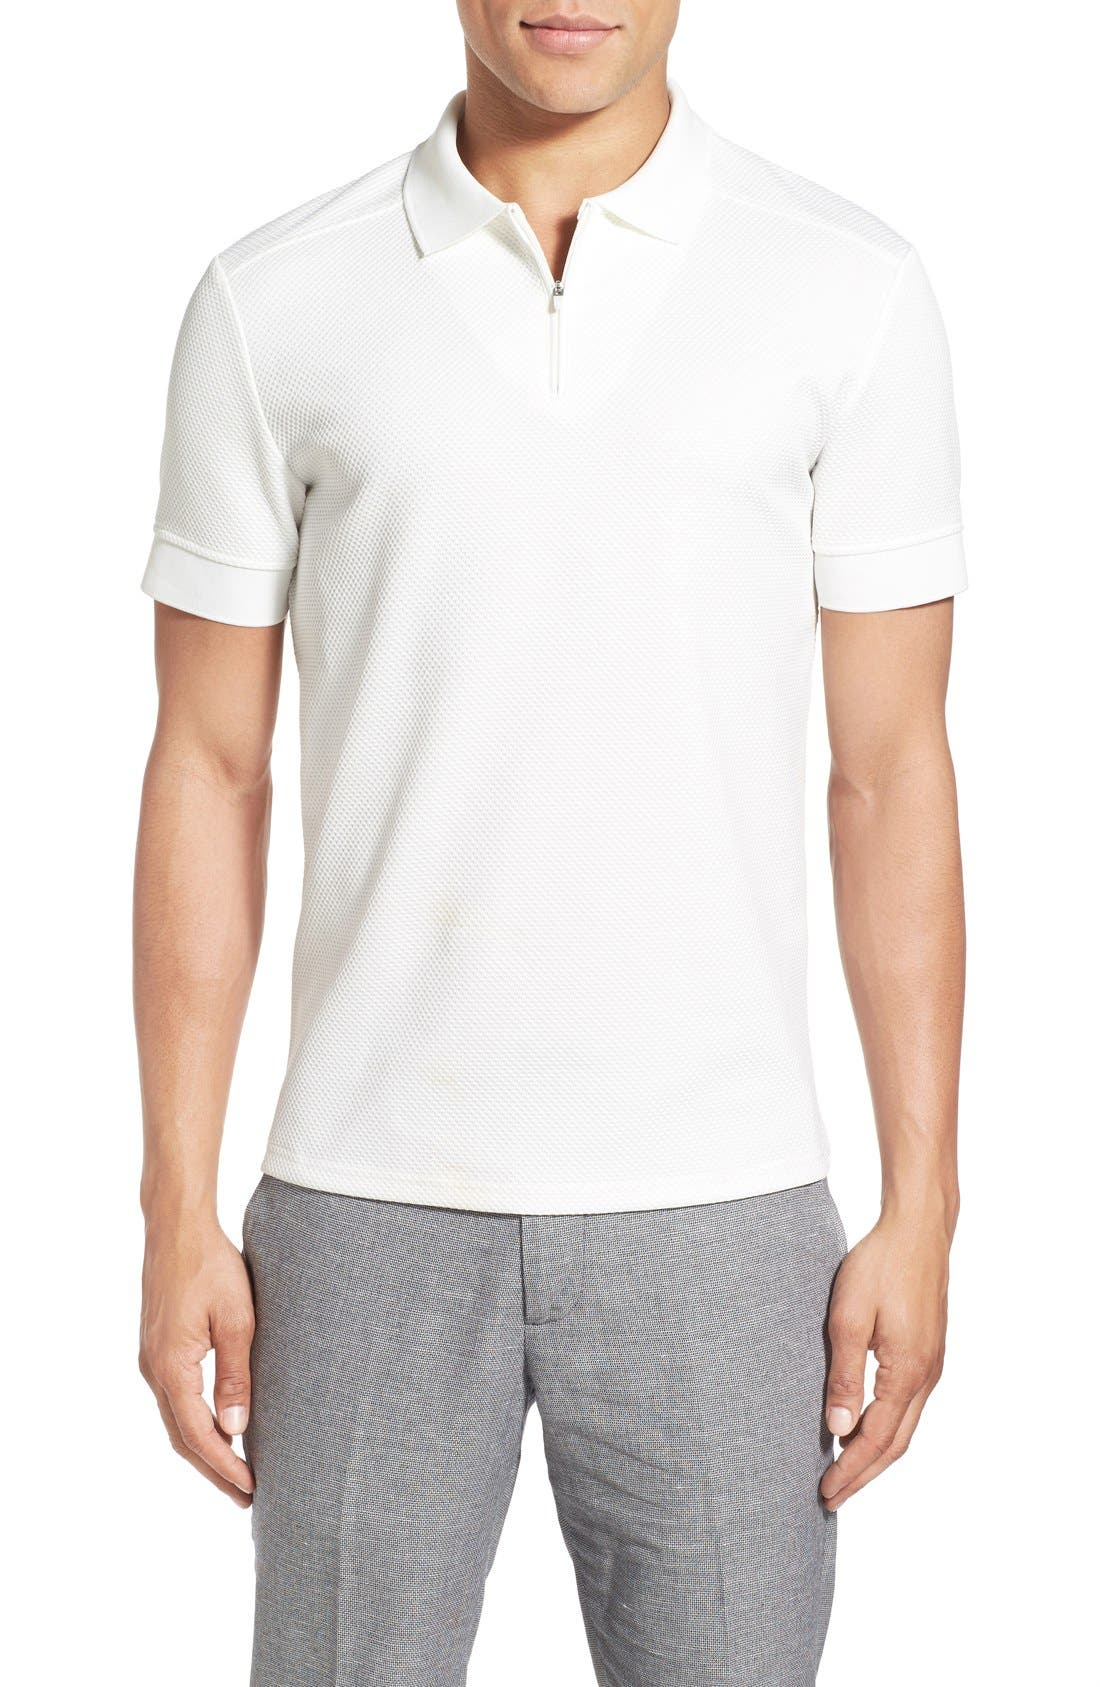 Main Image - Vince Camuto Slim Fit Mesh Polo